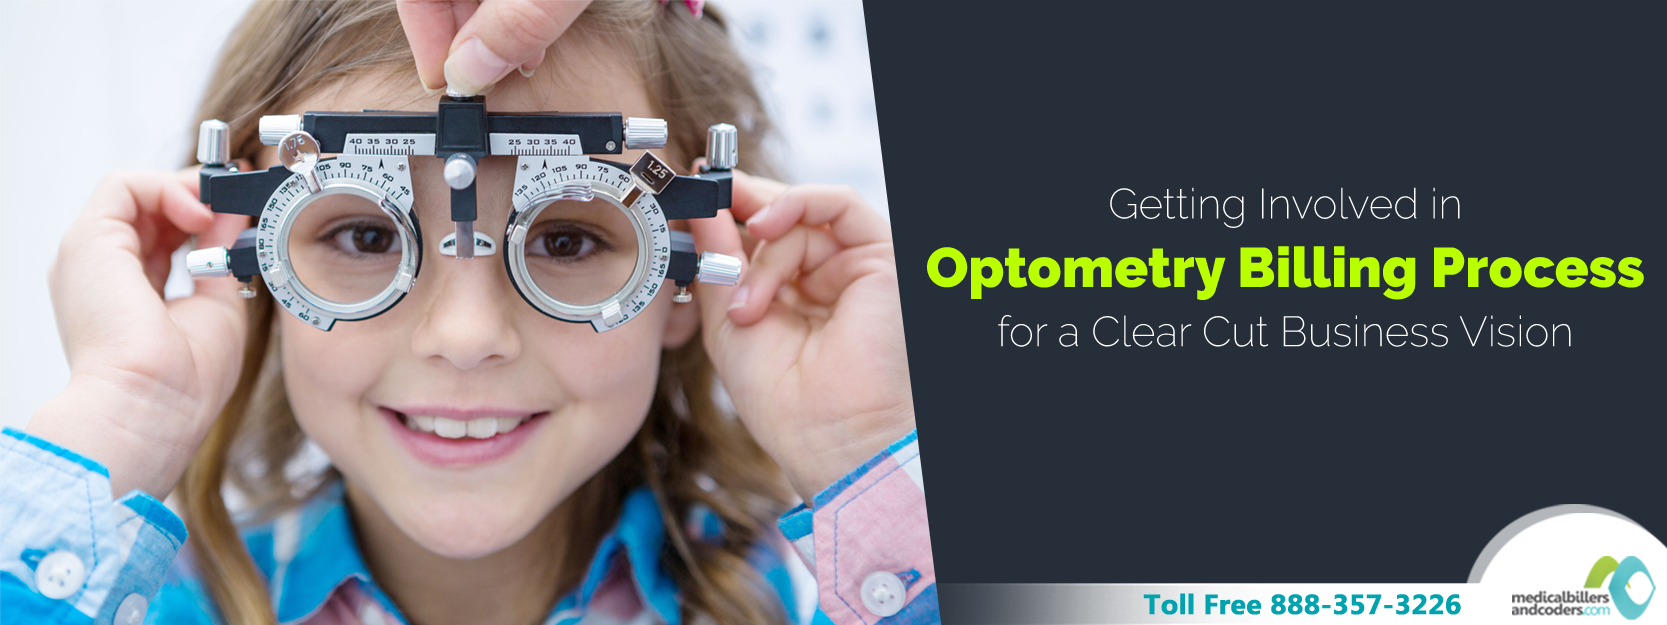 Getting-Involved-in-Optometry-Billing-Process-for-a-Clear-Cut-Business-Vision.jpg